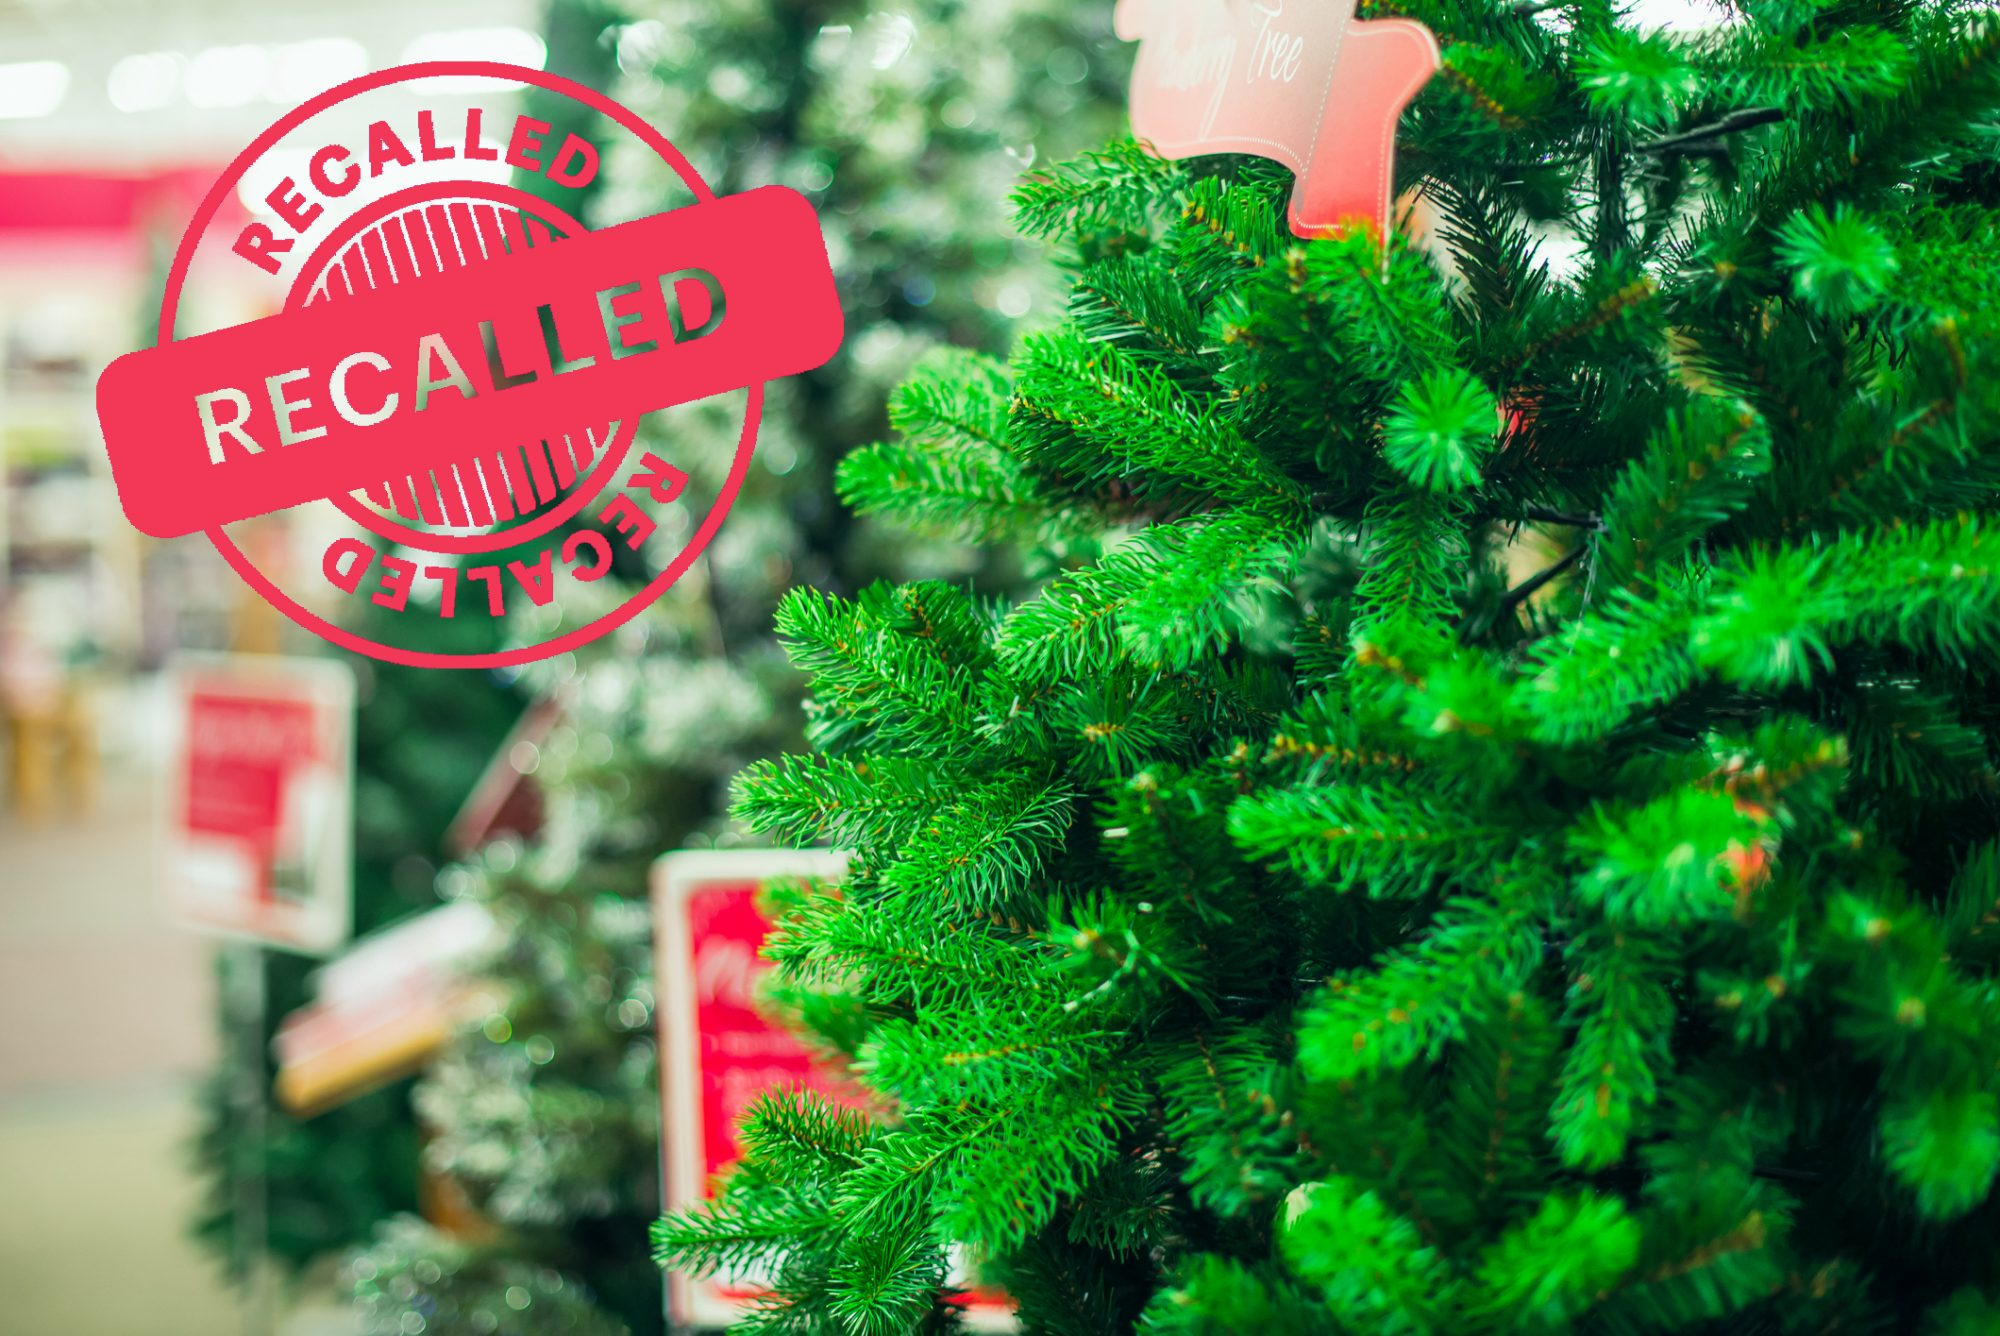 Close up artificial green Christmas trees for sale with Recalled Stamp overtop image